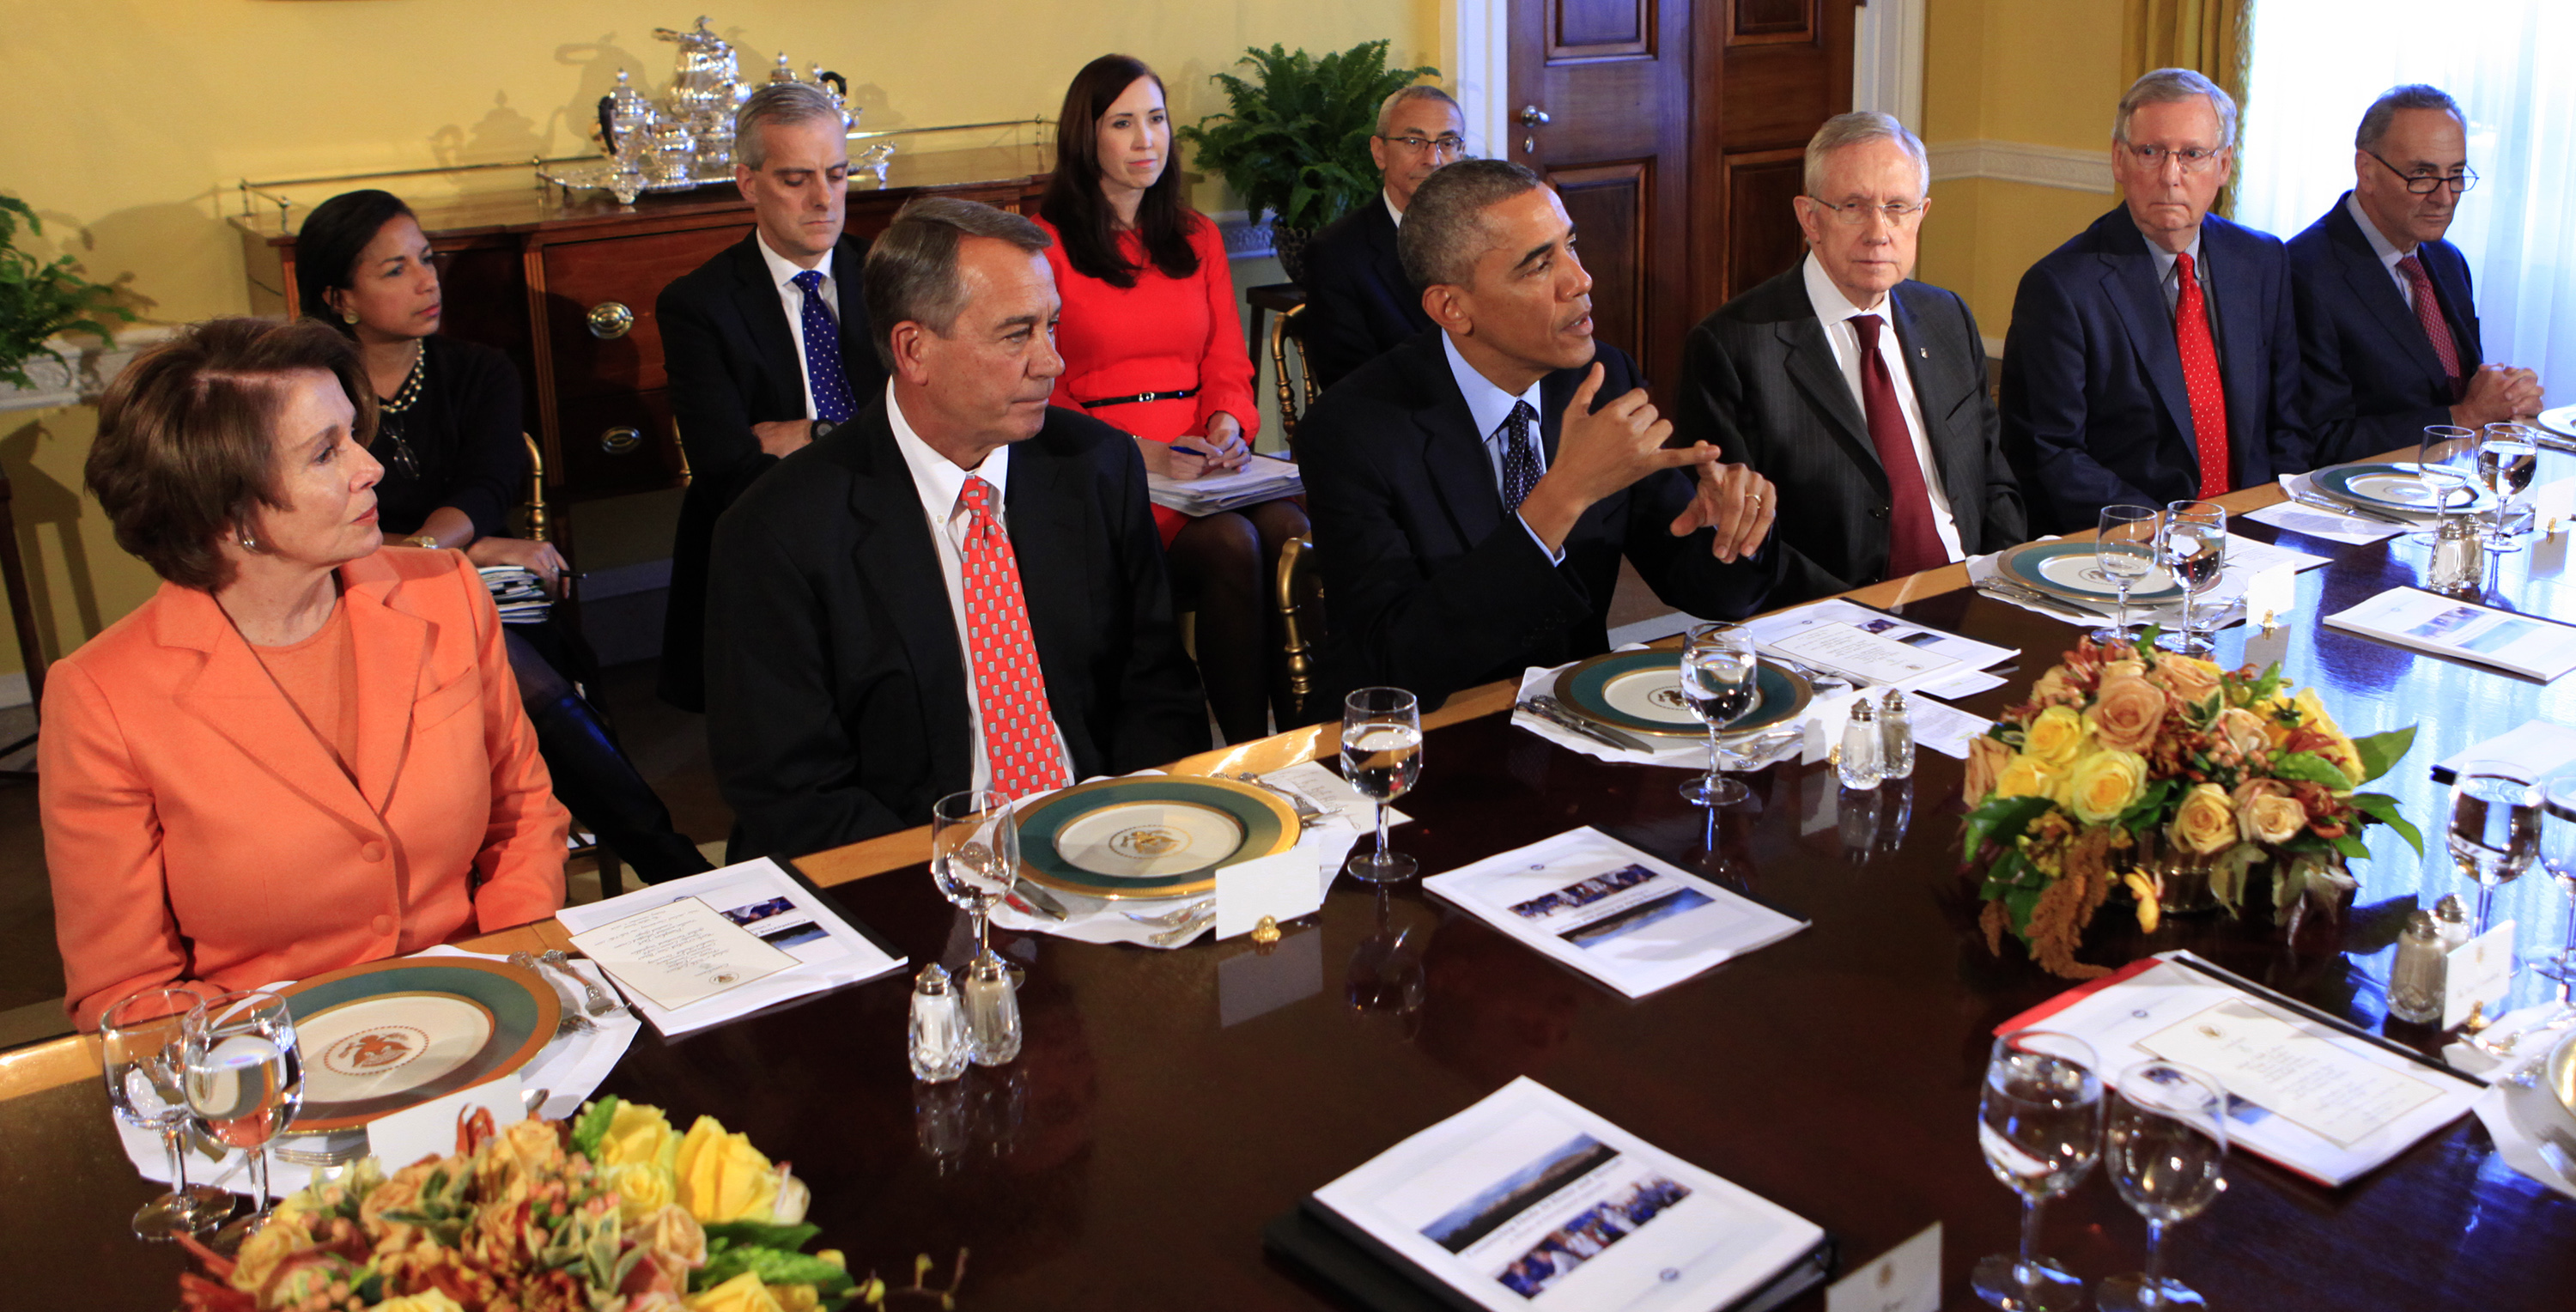 Hope and change? Not much in Obama's relationship with Congress ...